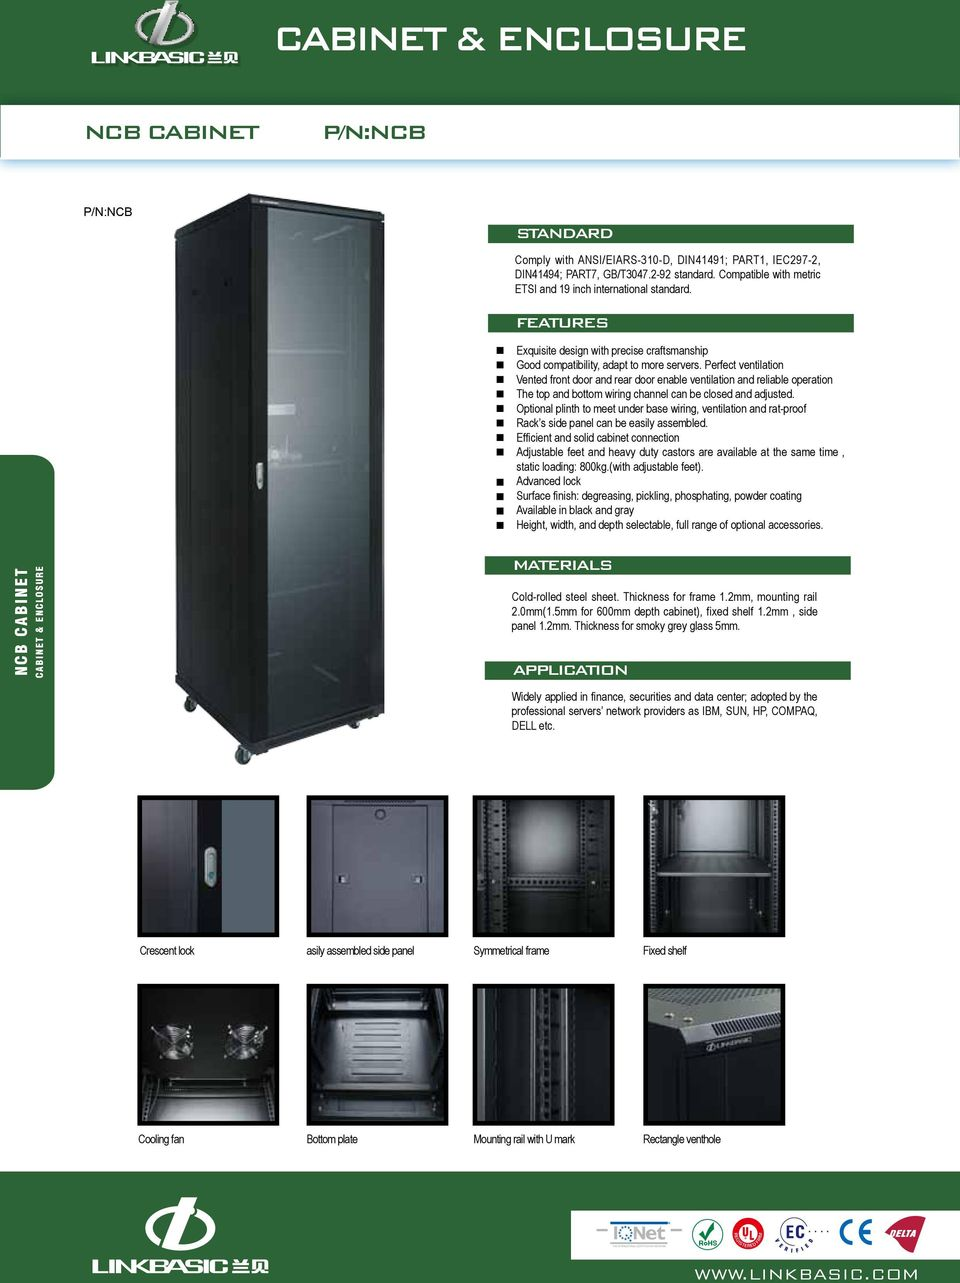 Perfect ventilation Vented front door and rear door enable ventilation and reliable operation The top and bottom wiring channel can be closed and adjusted.